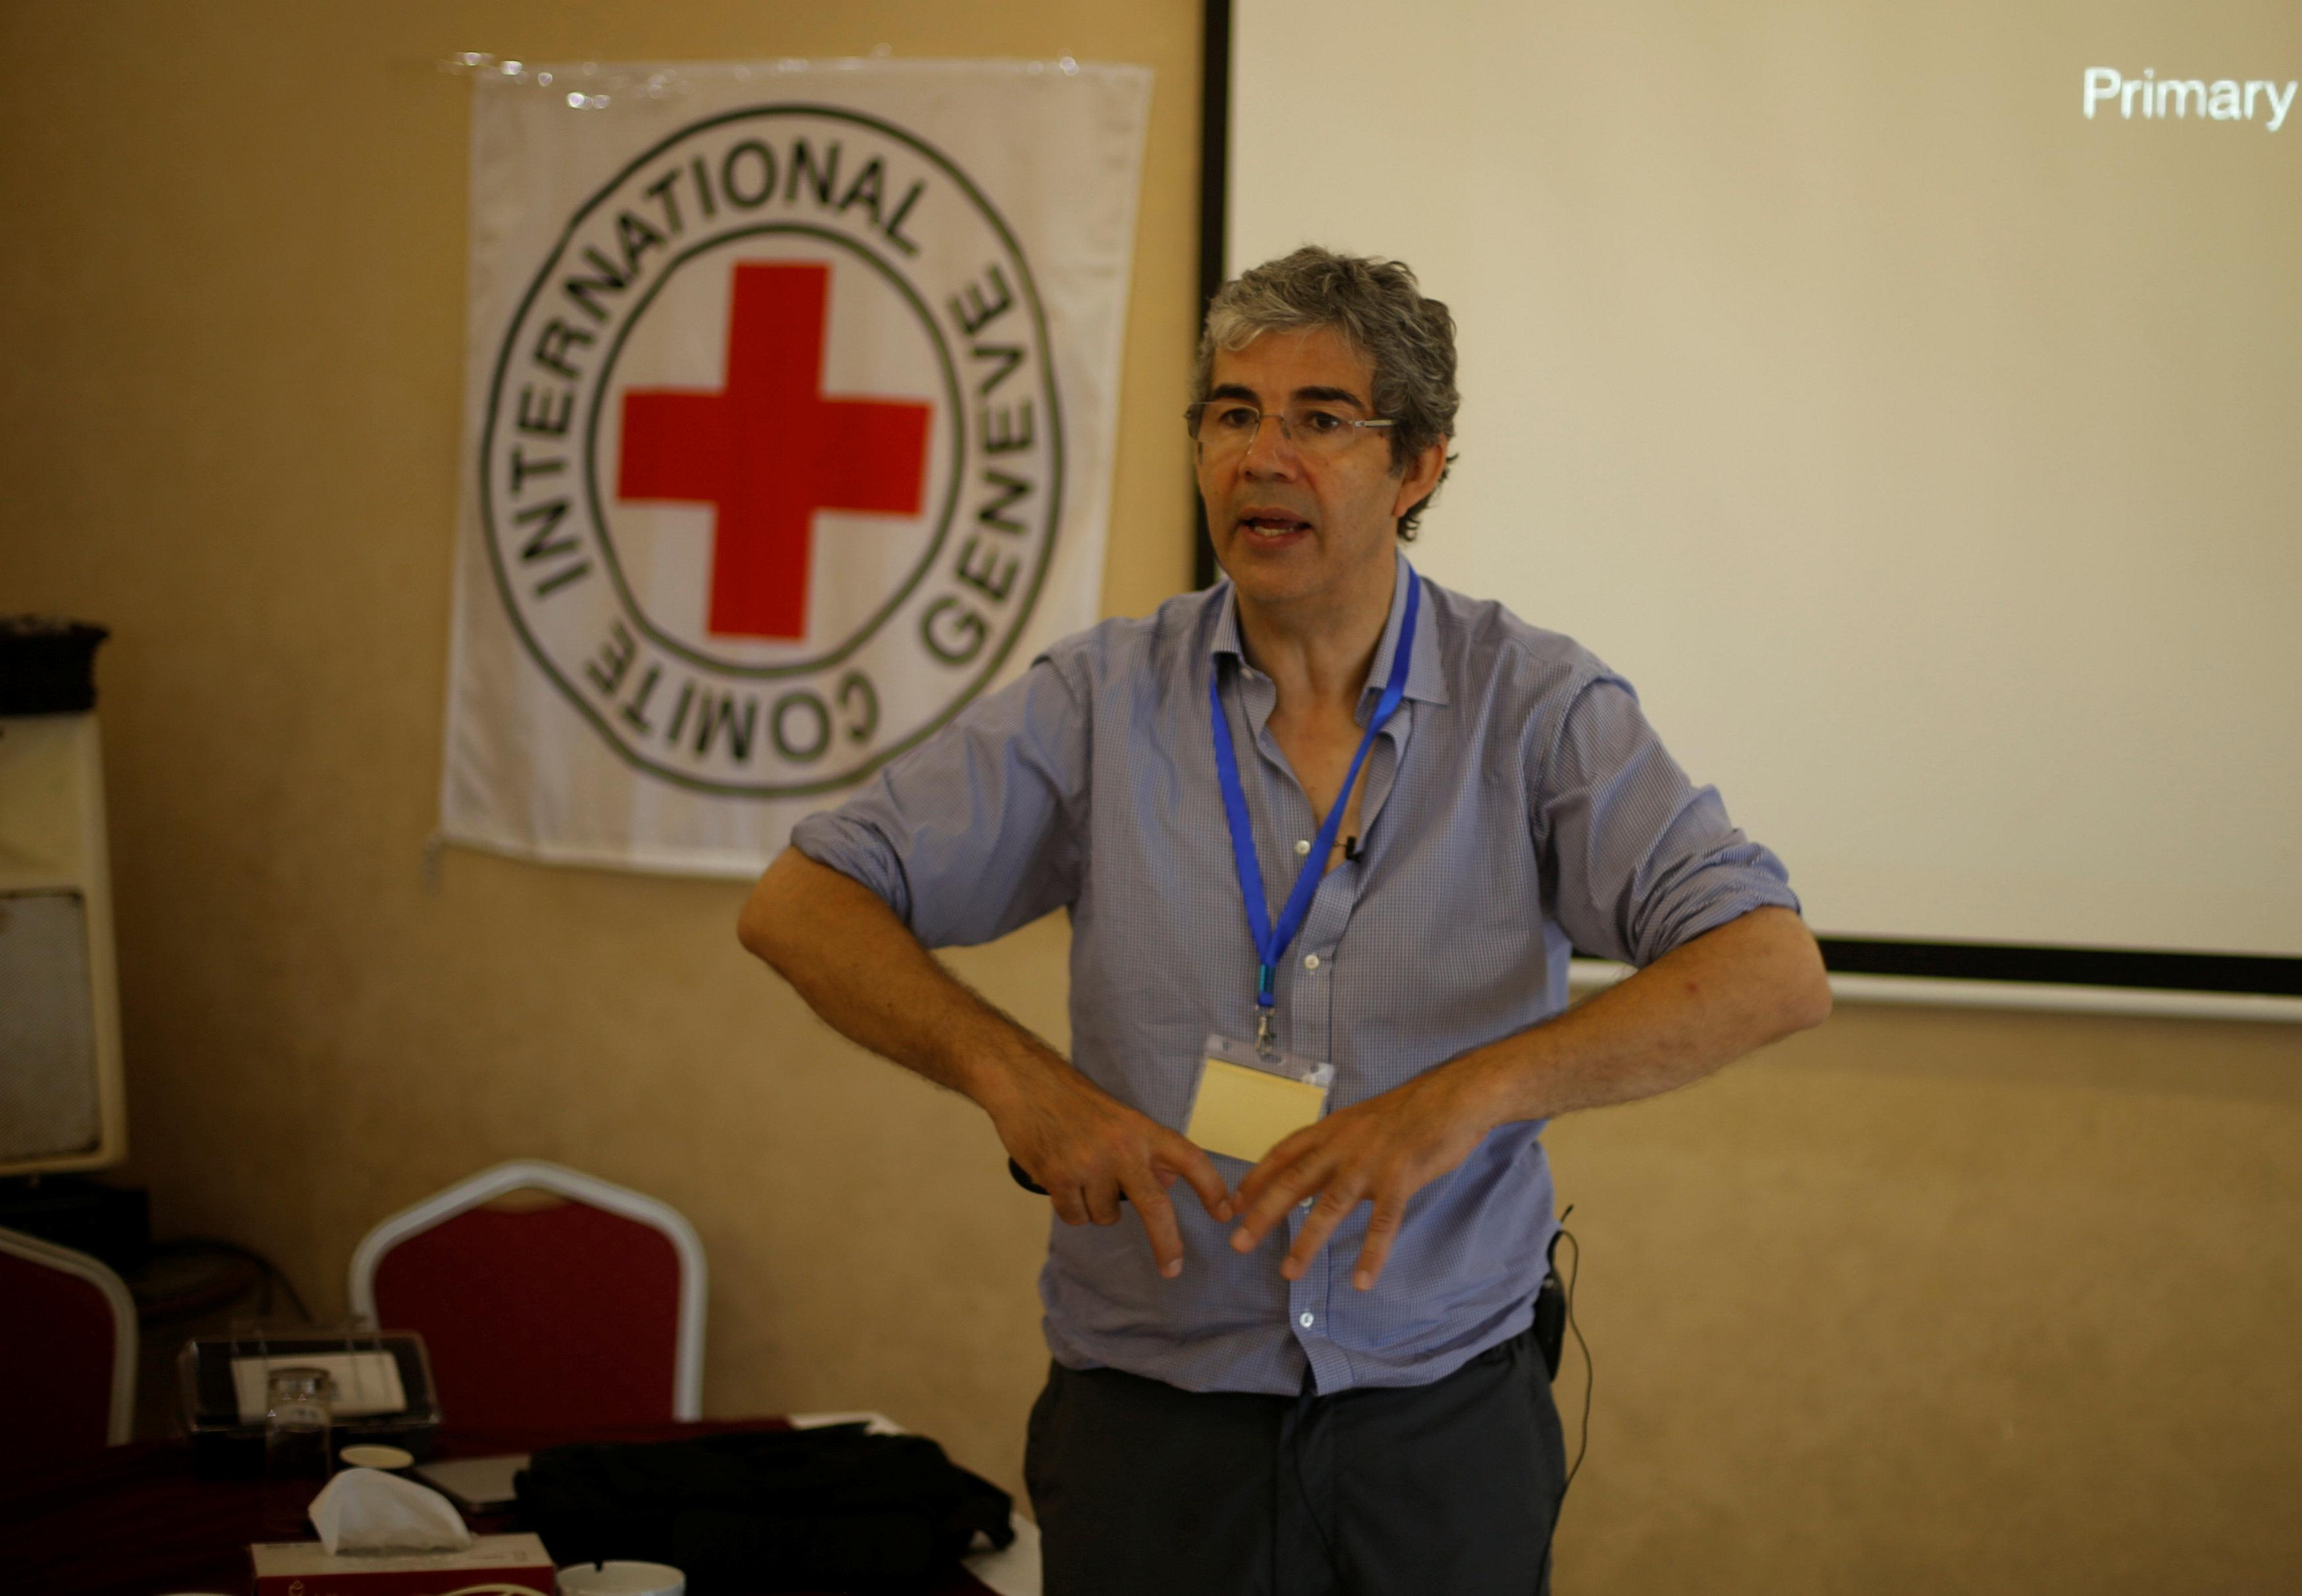 British war surgeon Nott returns to Gaza to train doctors